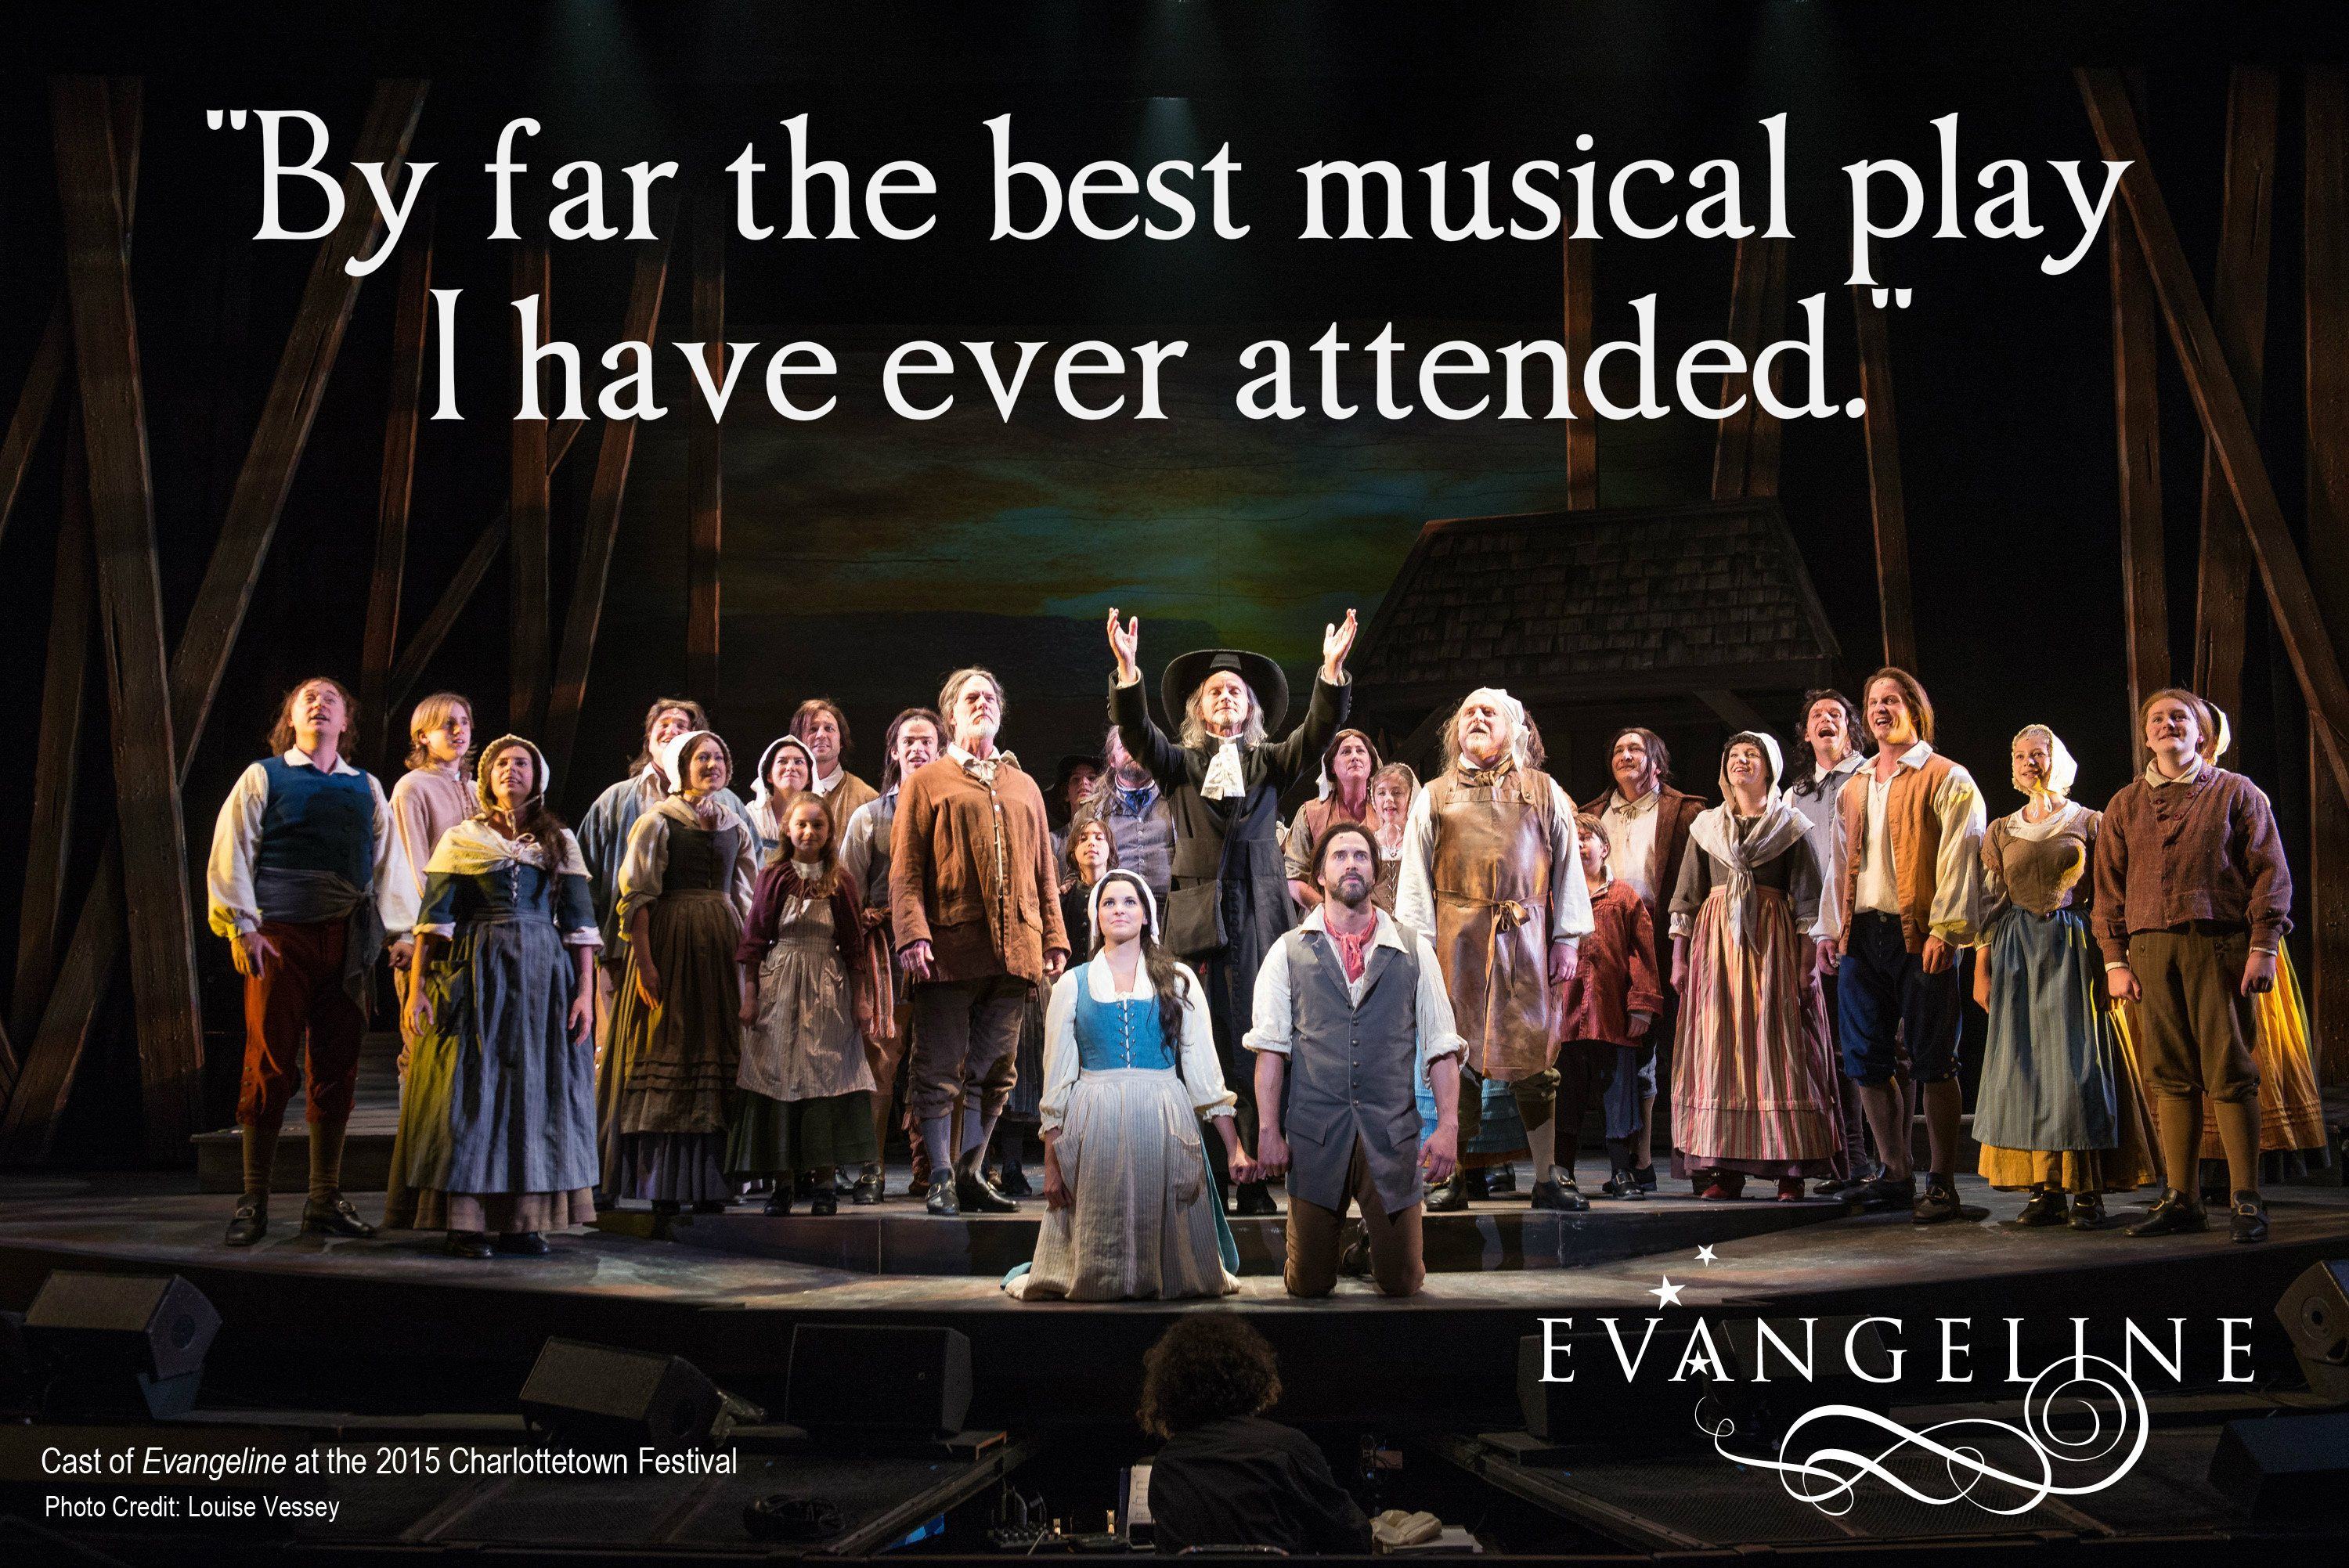 """From the Confederation Centre's """"Let Us Know"""" surveys.  The cast of Evangeline at the 2015 Charlottetown festival."""